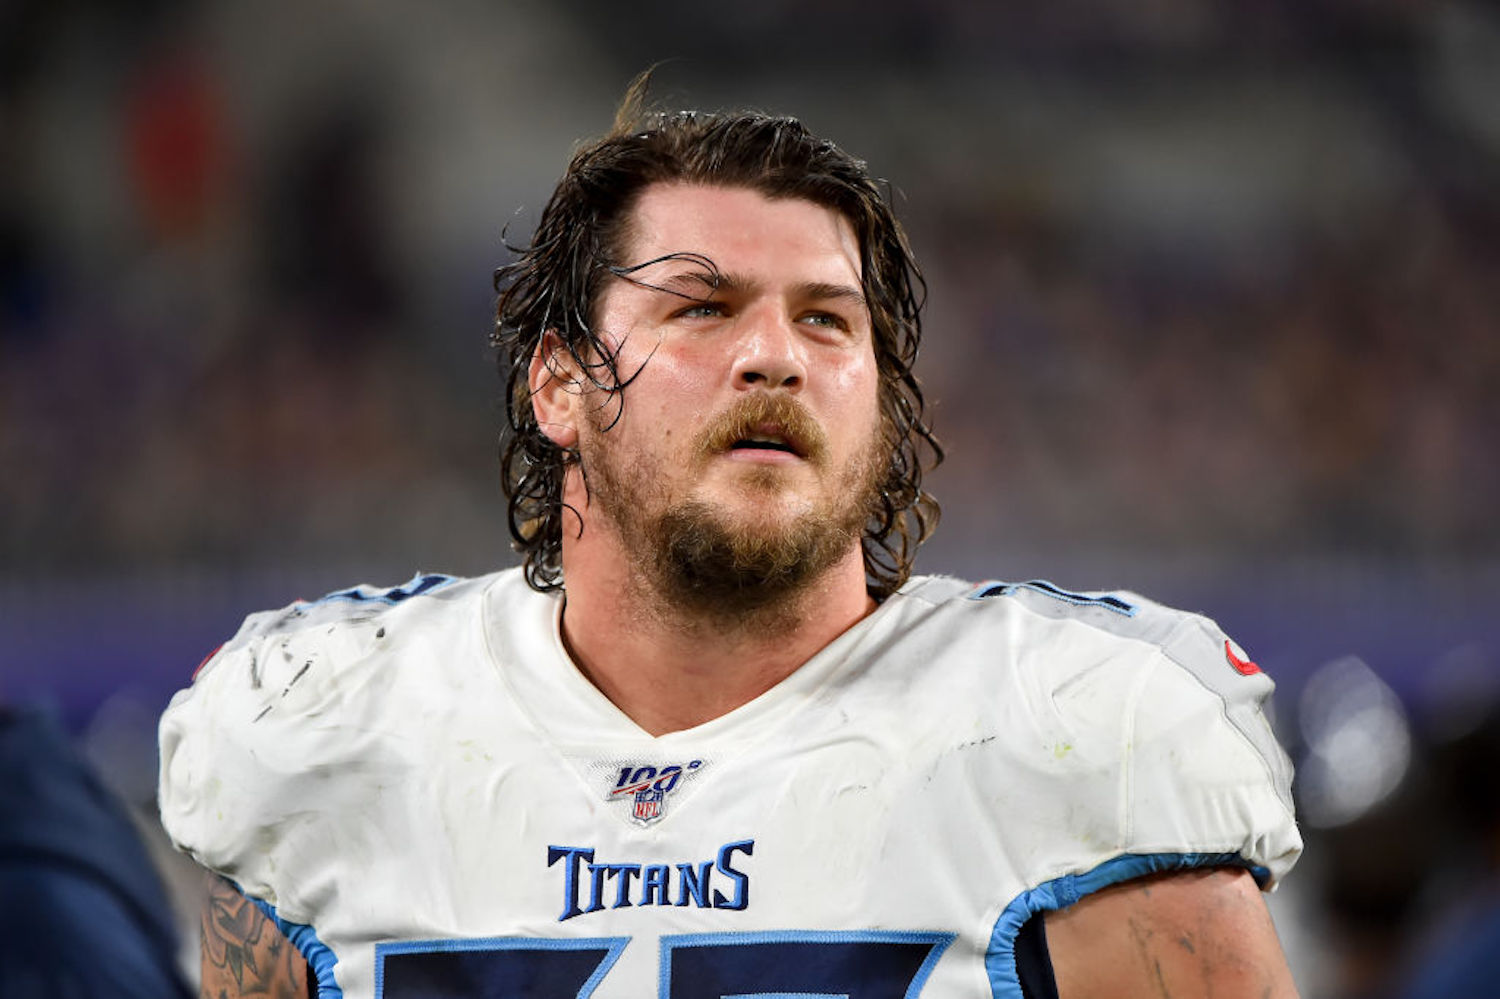 The Tennessee Titans Just Lost Their $80 Million Star for the Season